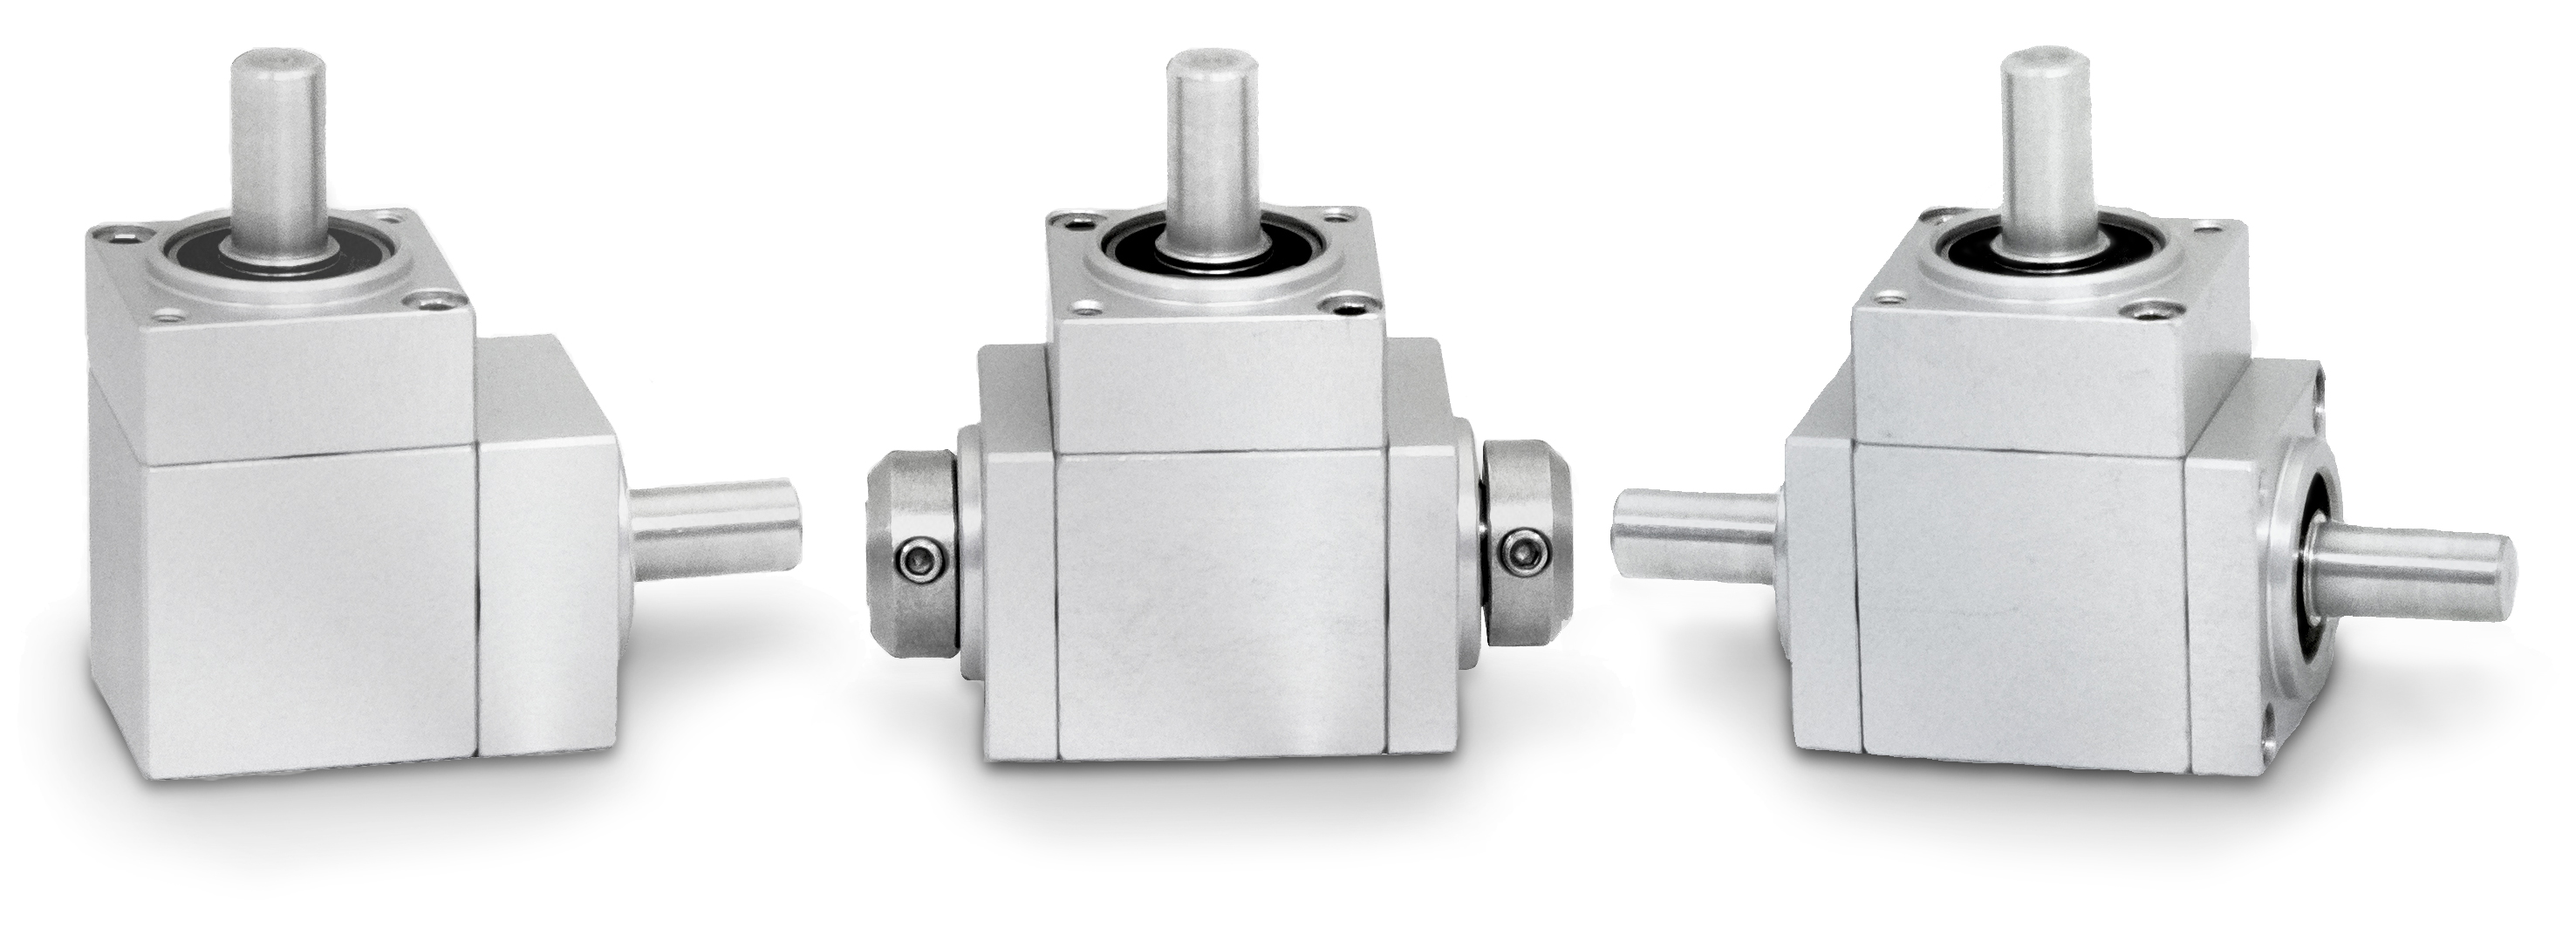 66/4 Gearboxes - Right-angle drives for position indicators